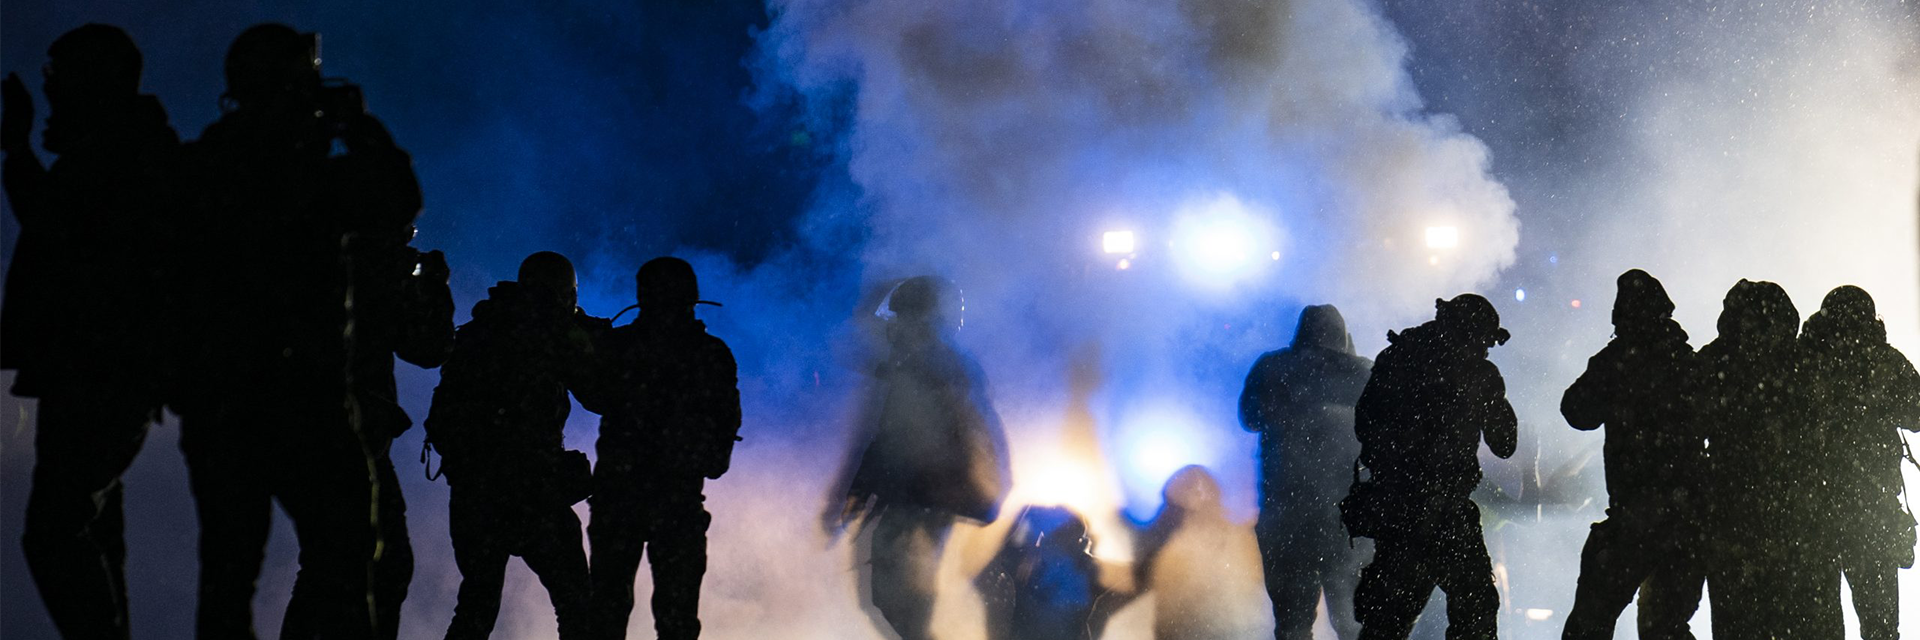 Shadows of demonstrators with tear gas in background